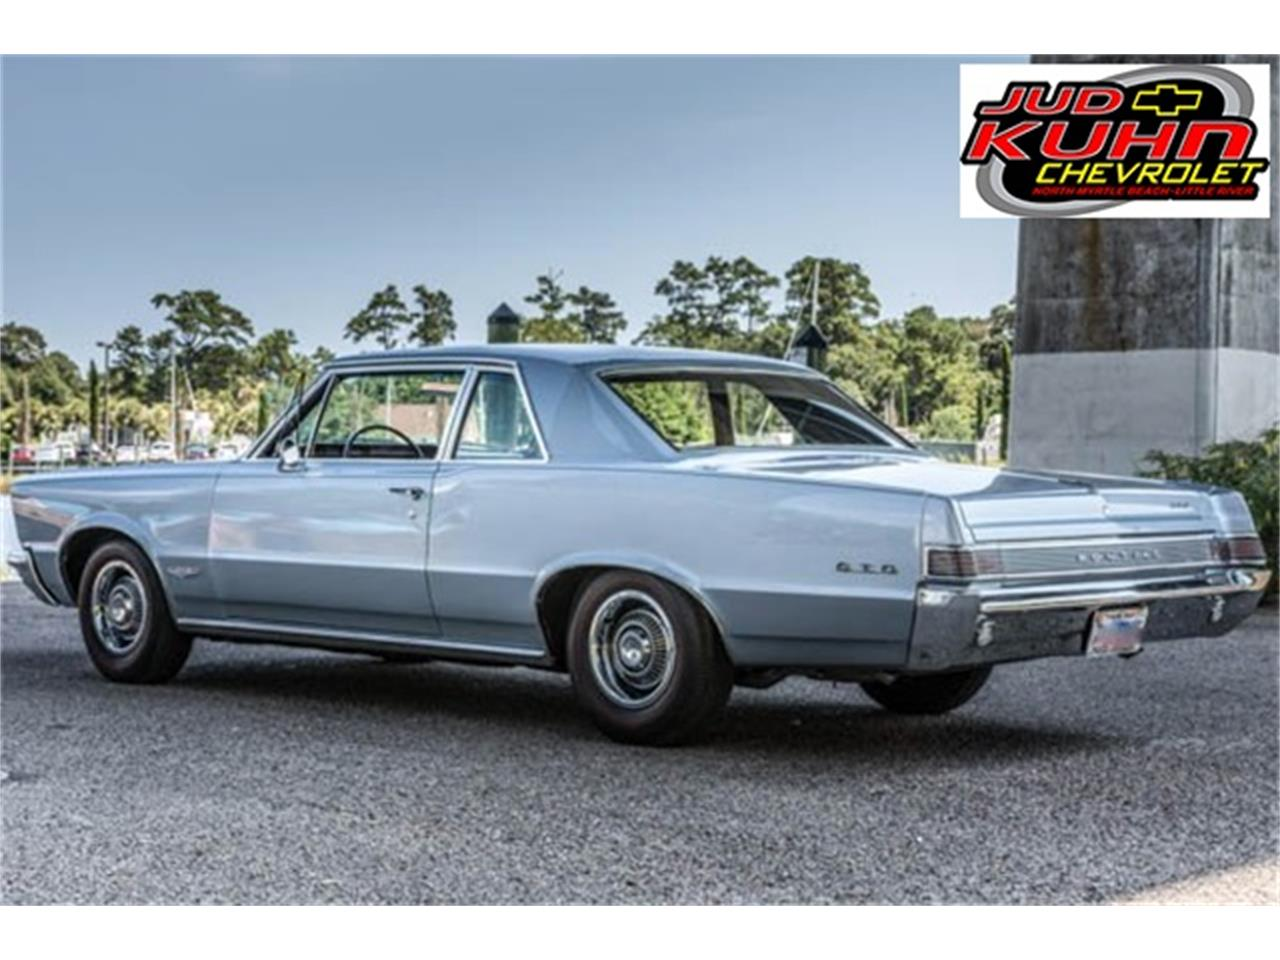 Large Picture of '65 Pontiac GTO located in South Carolina - $42,500.00 Offered by Jud Kuhn Chevrolet - J909